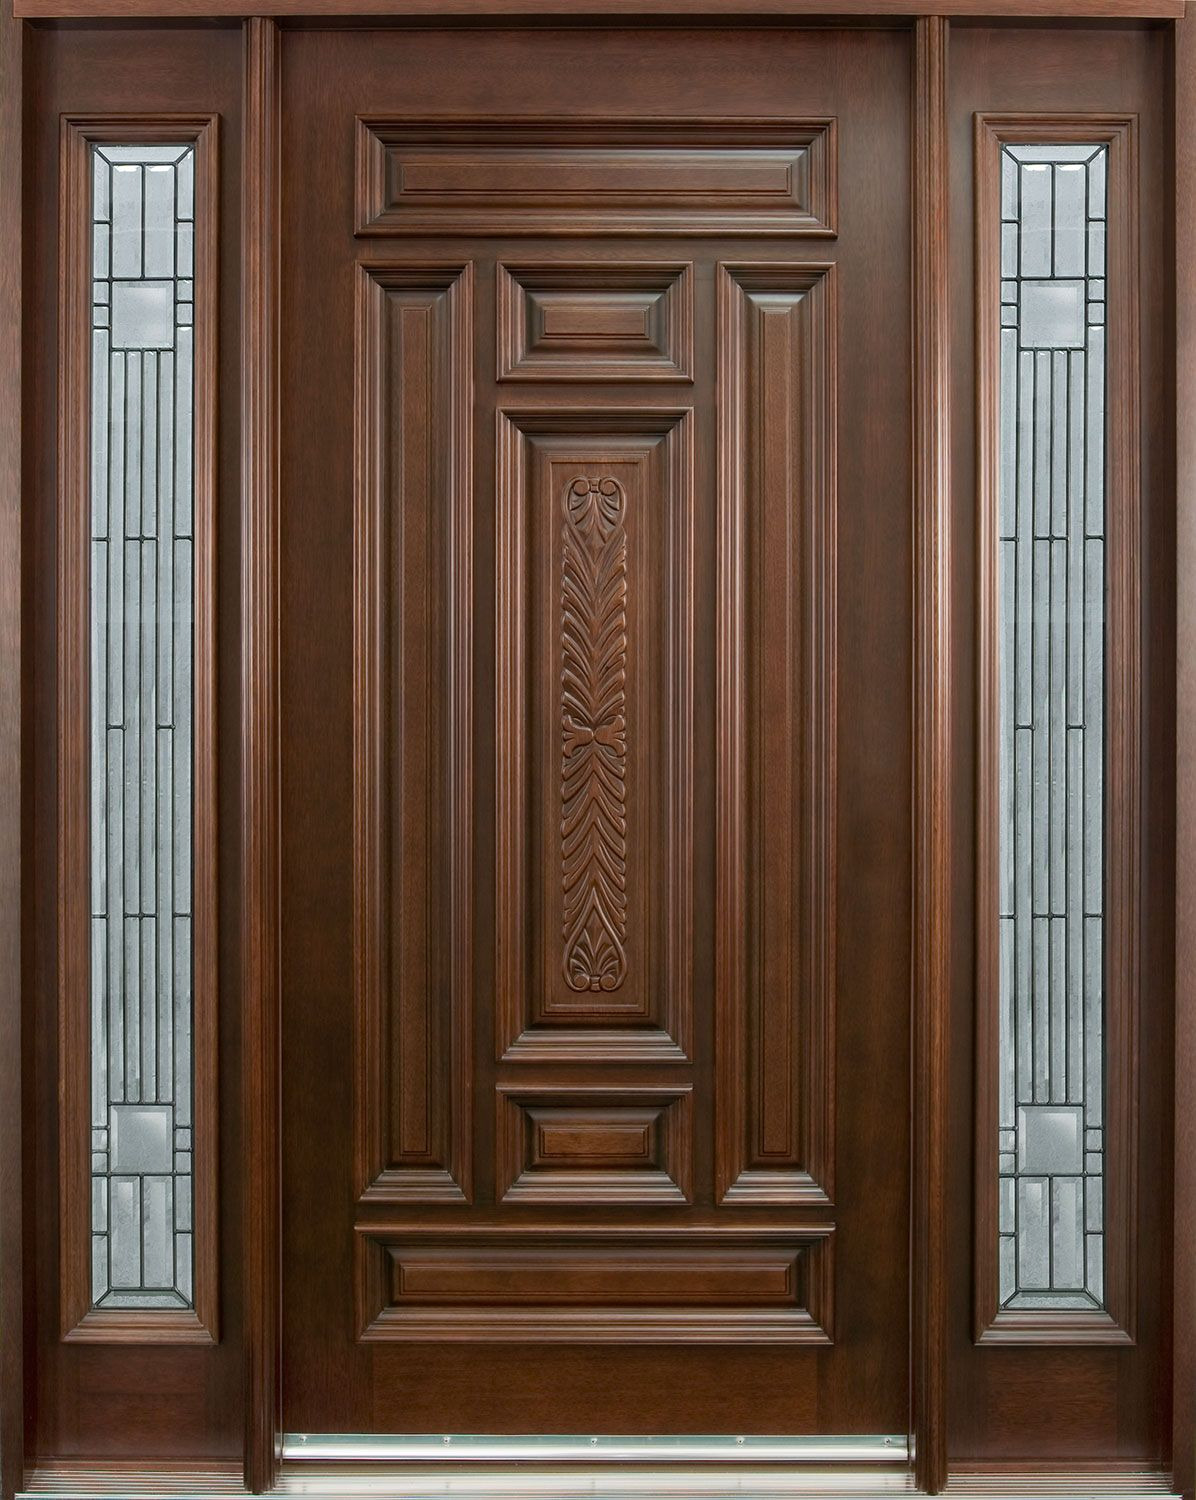 Best Main Door Design Image Lovely Architecture Classic Main Door Design Using Stained Glass